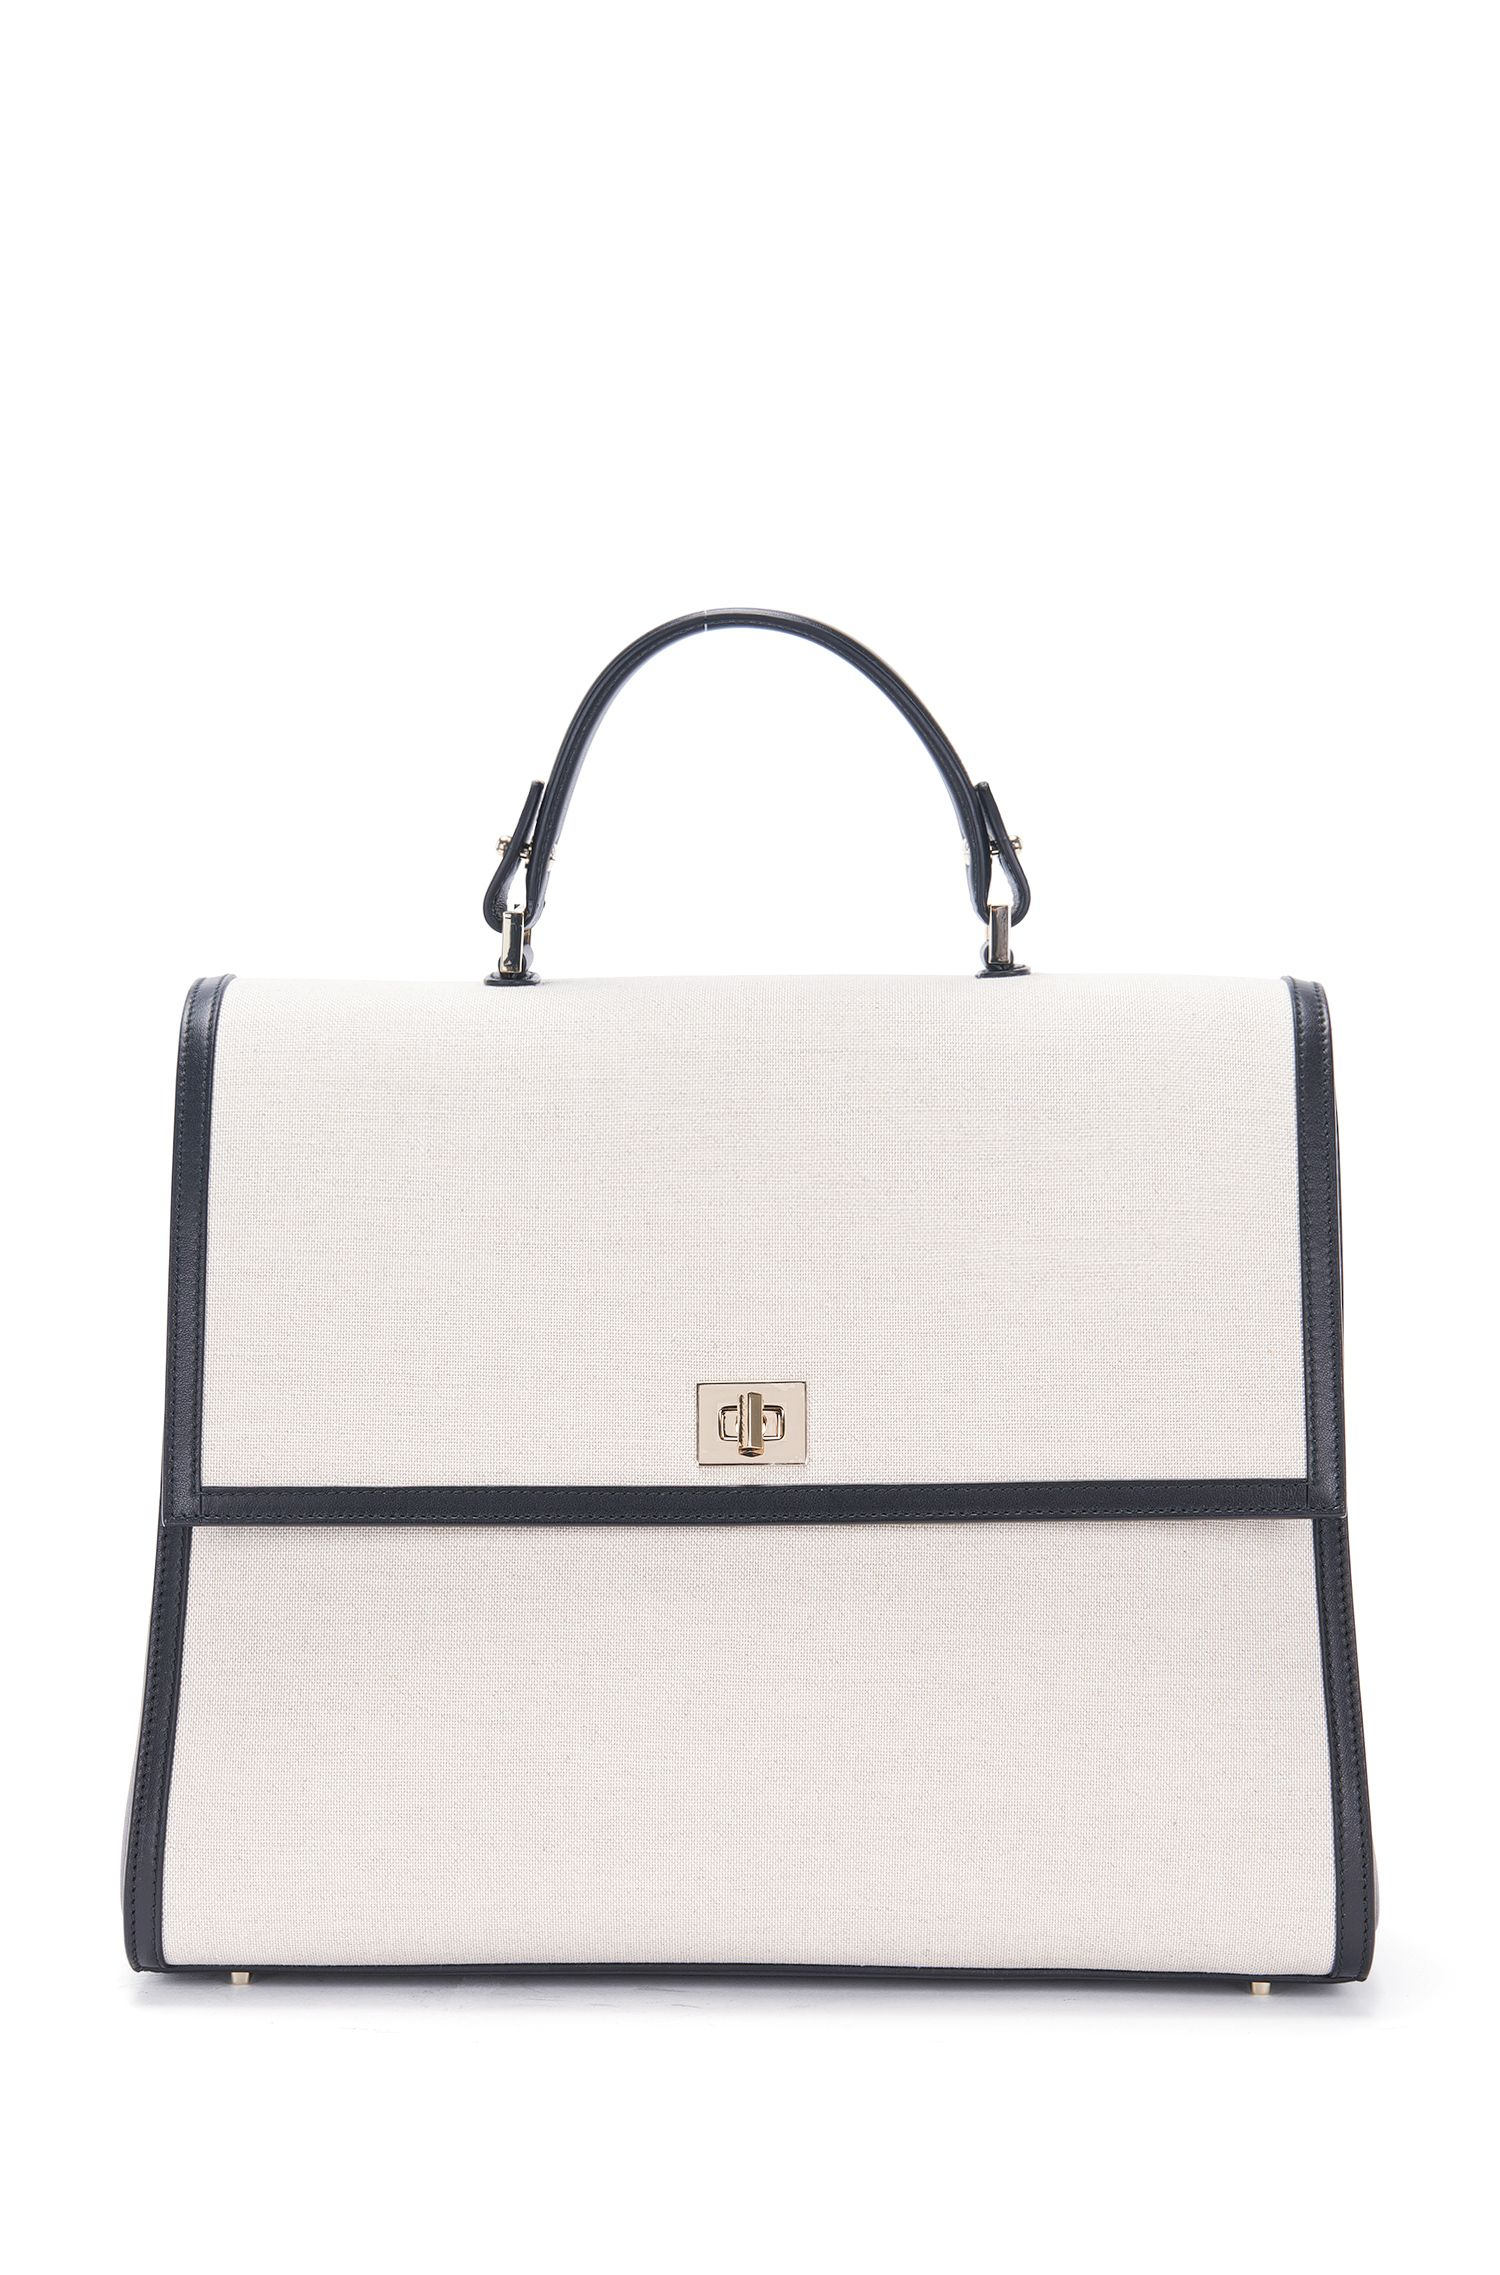 Leather-Trimmed Cotton-Linen Handbag | BOSS Bespoke TH M SC